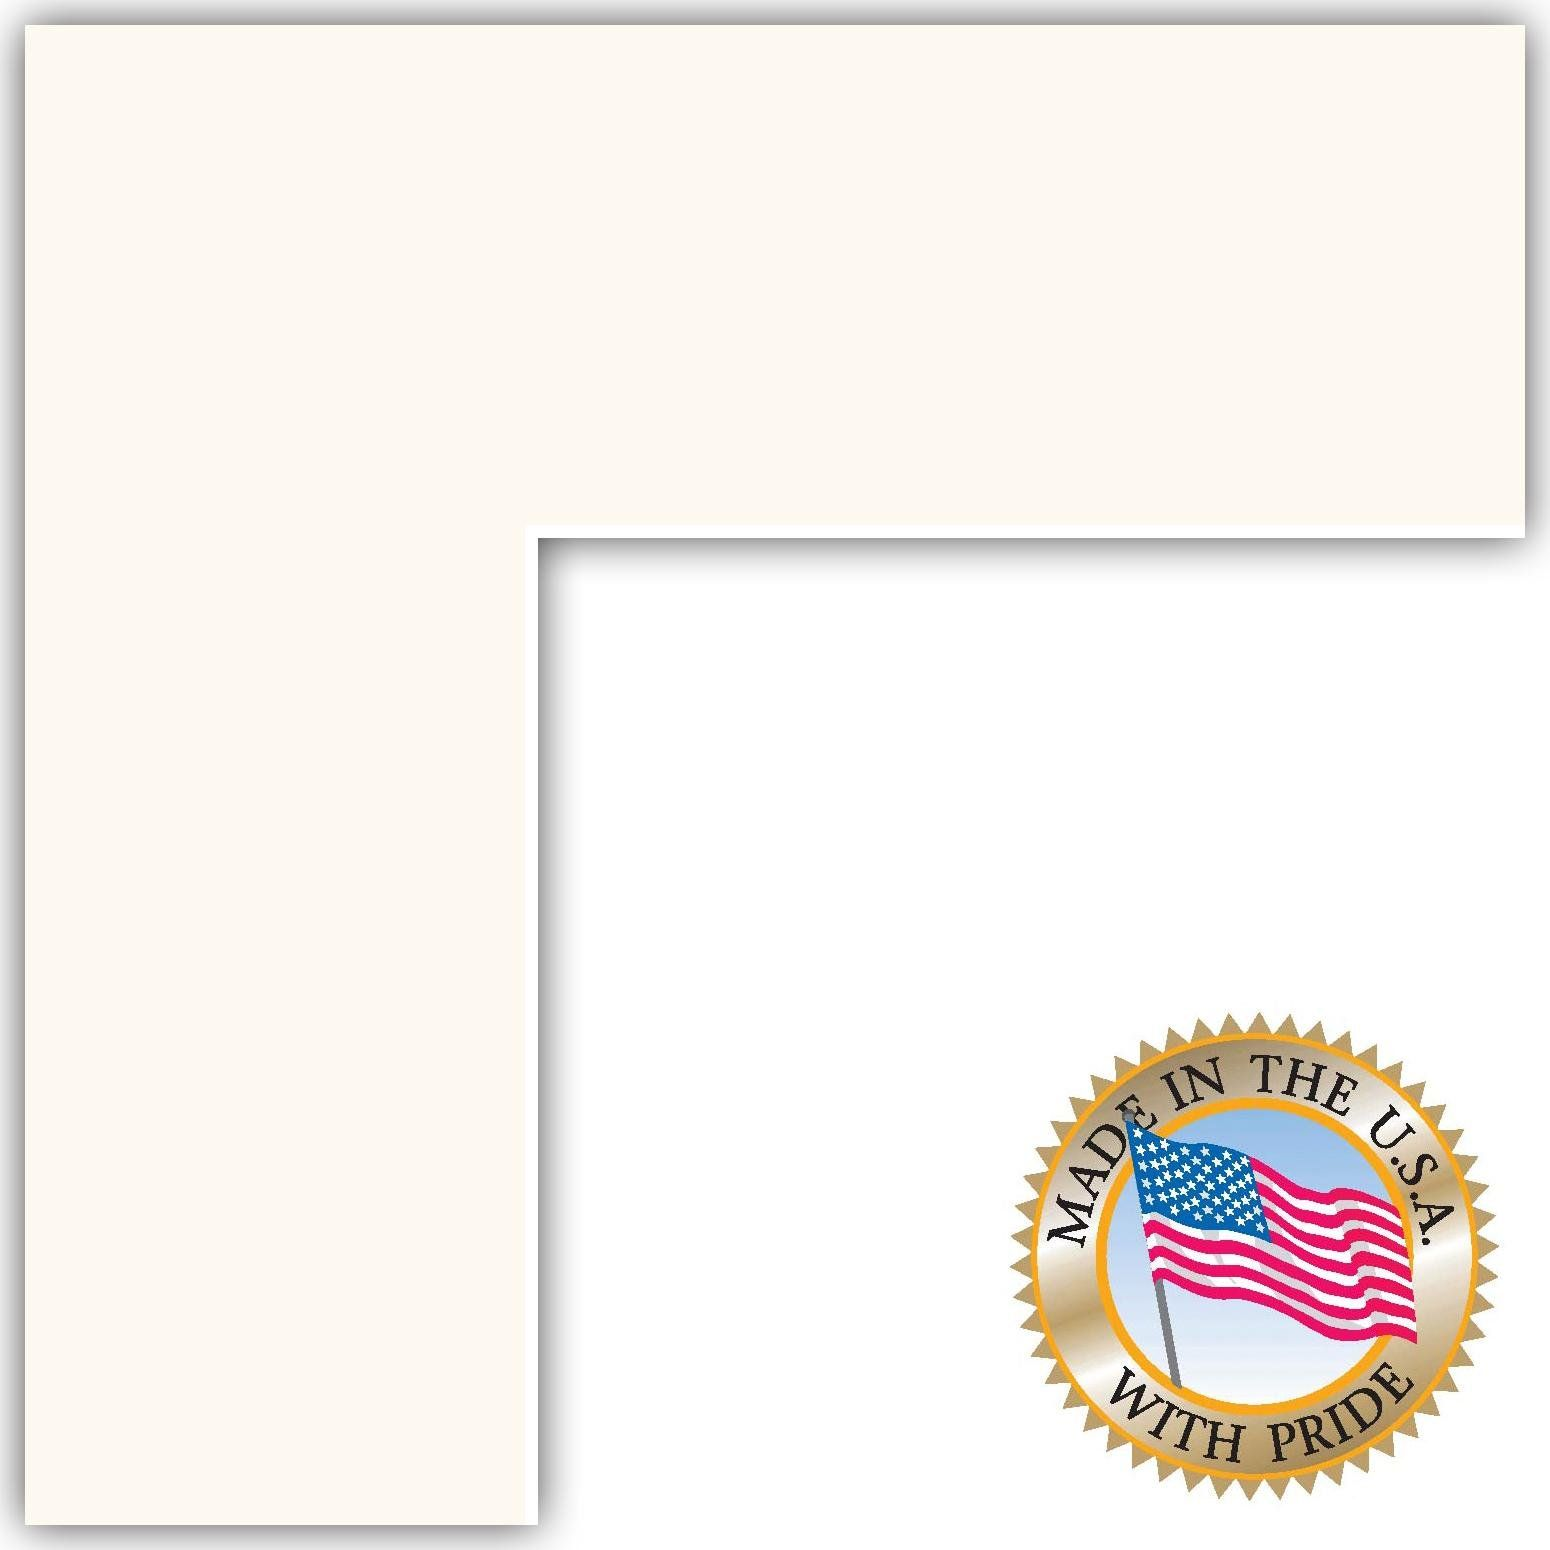 Amazon.com - 20x24 Super White Custom Mat for Picture Frame with ...